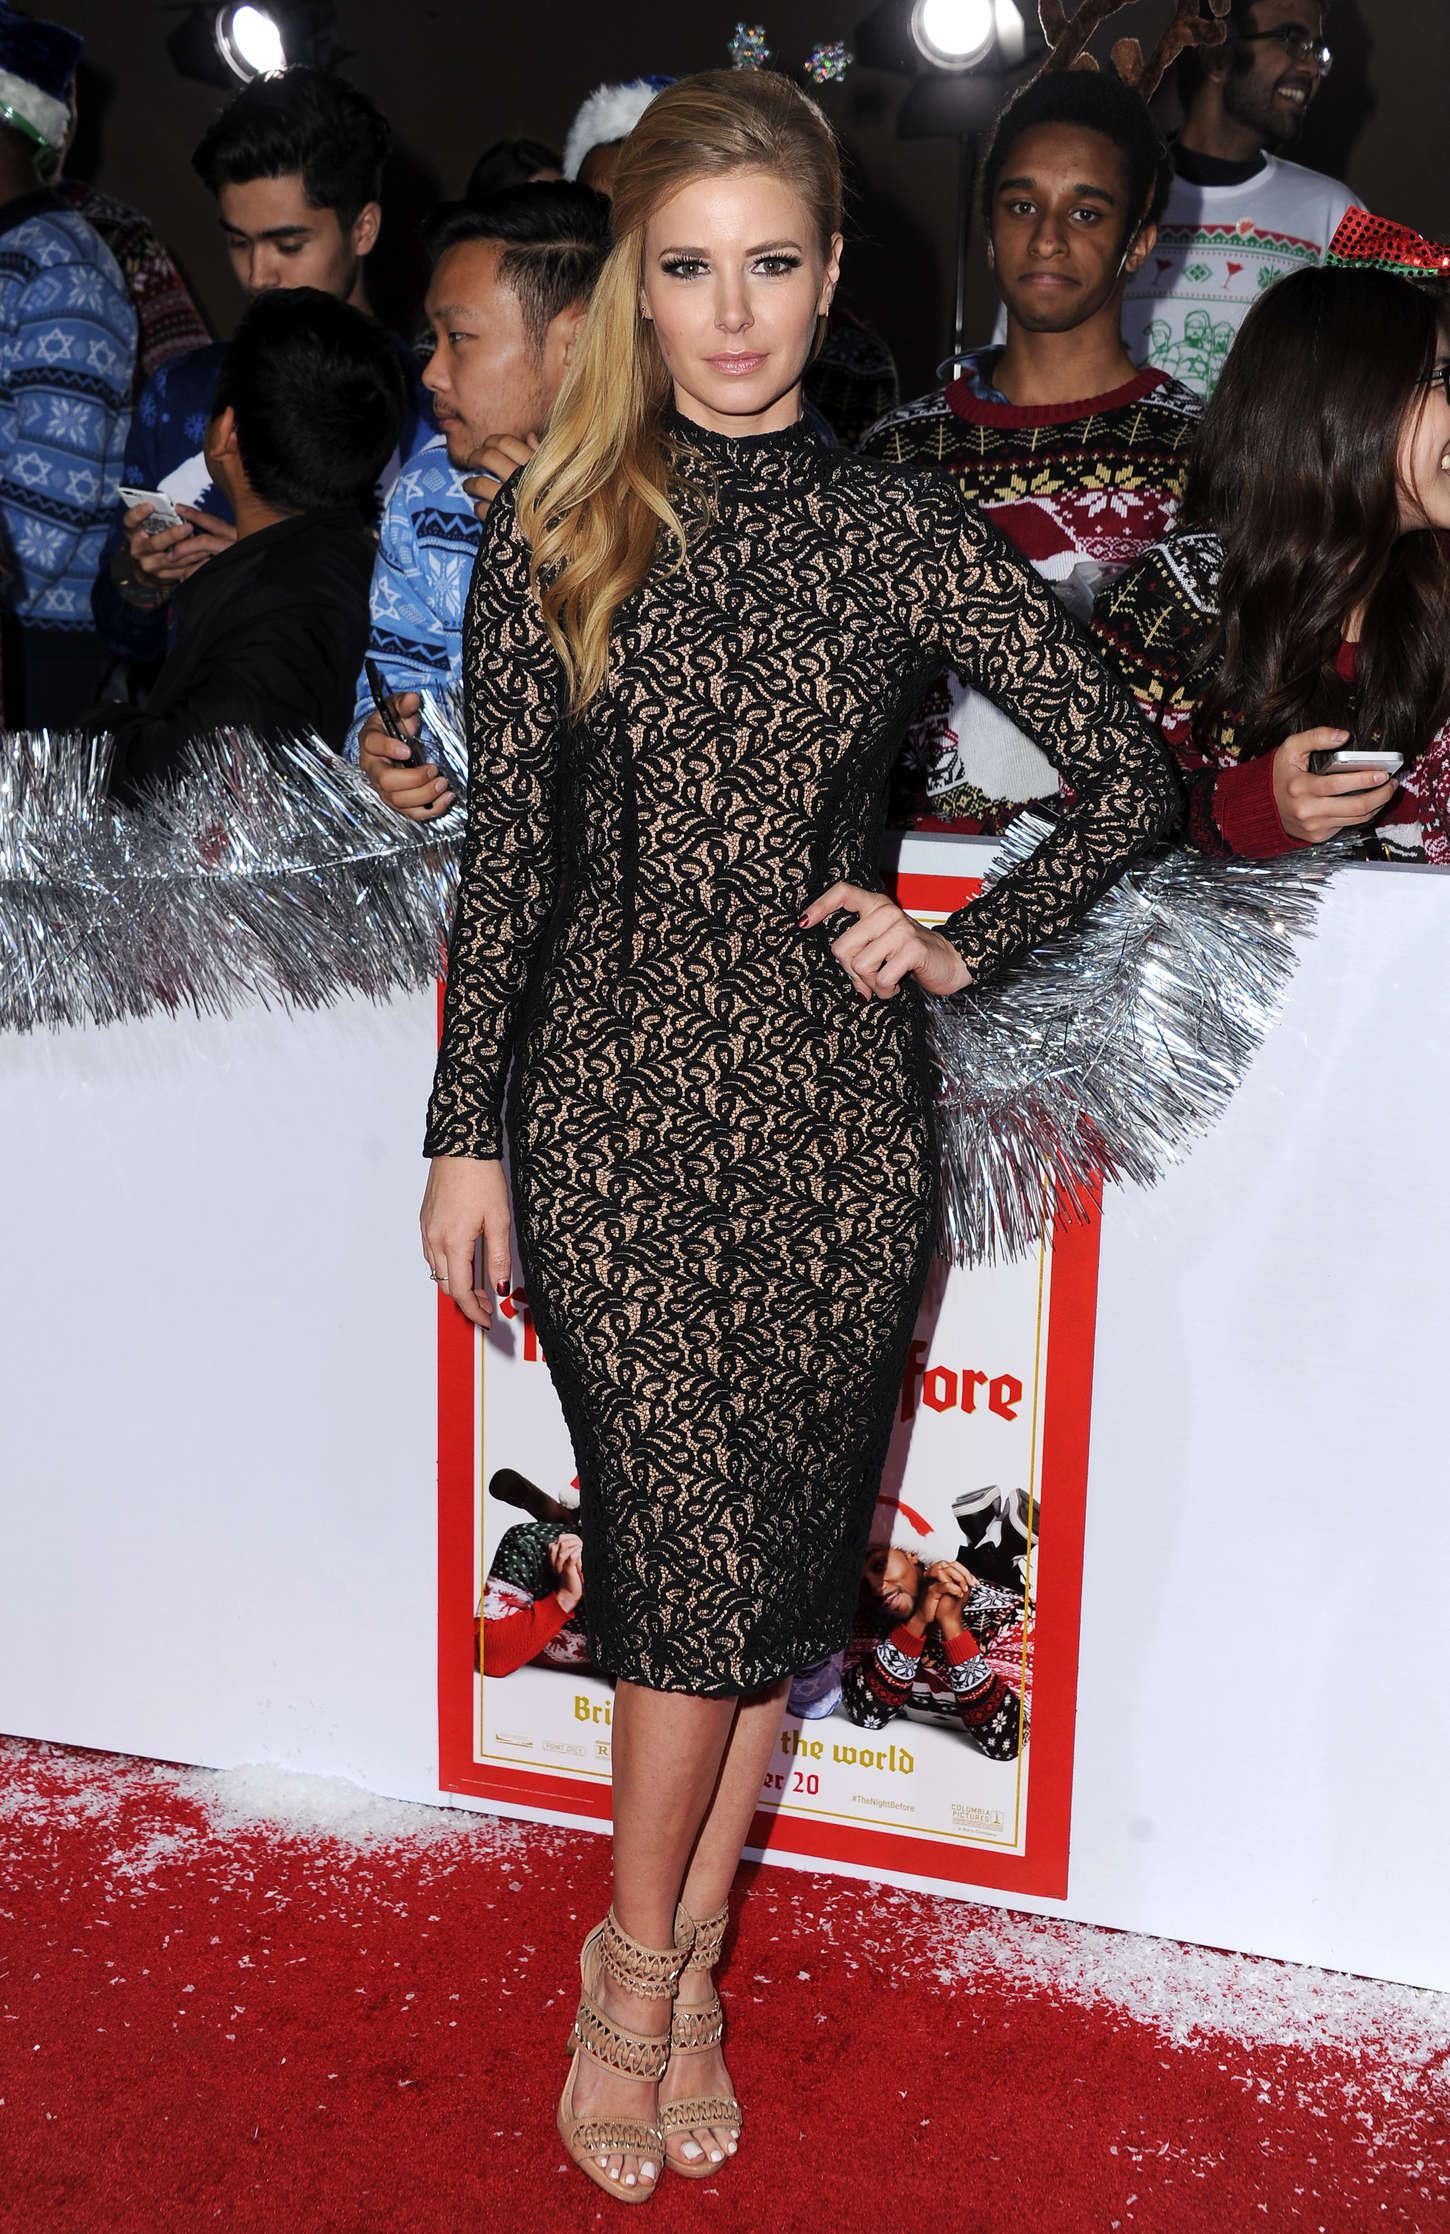 Ariana Madix The Night Before Premiere in Los Angeles